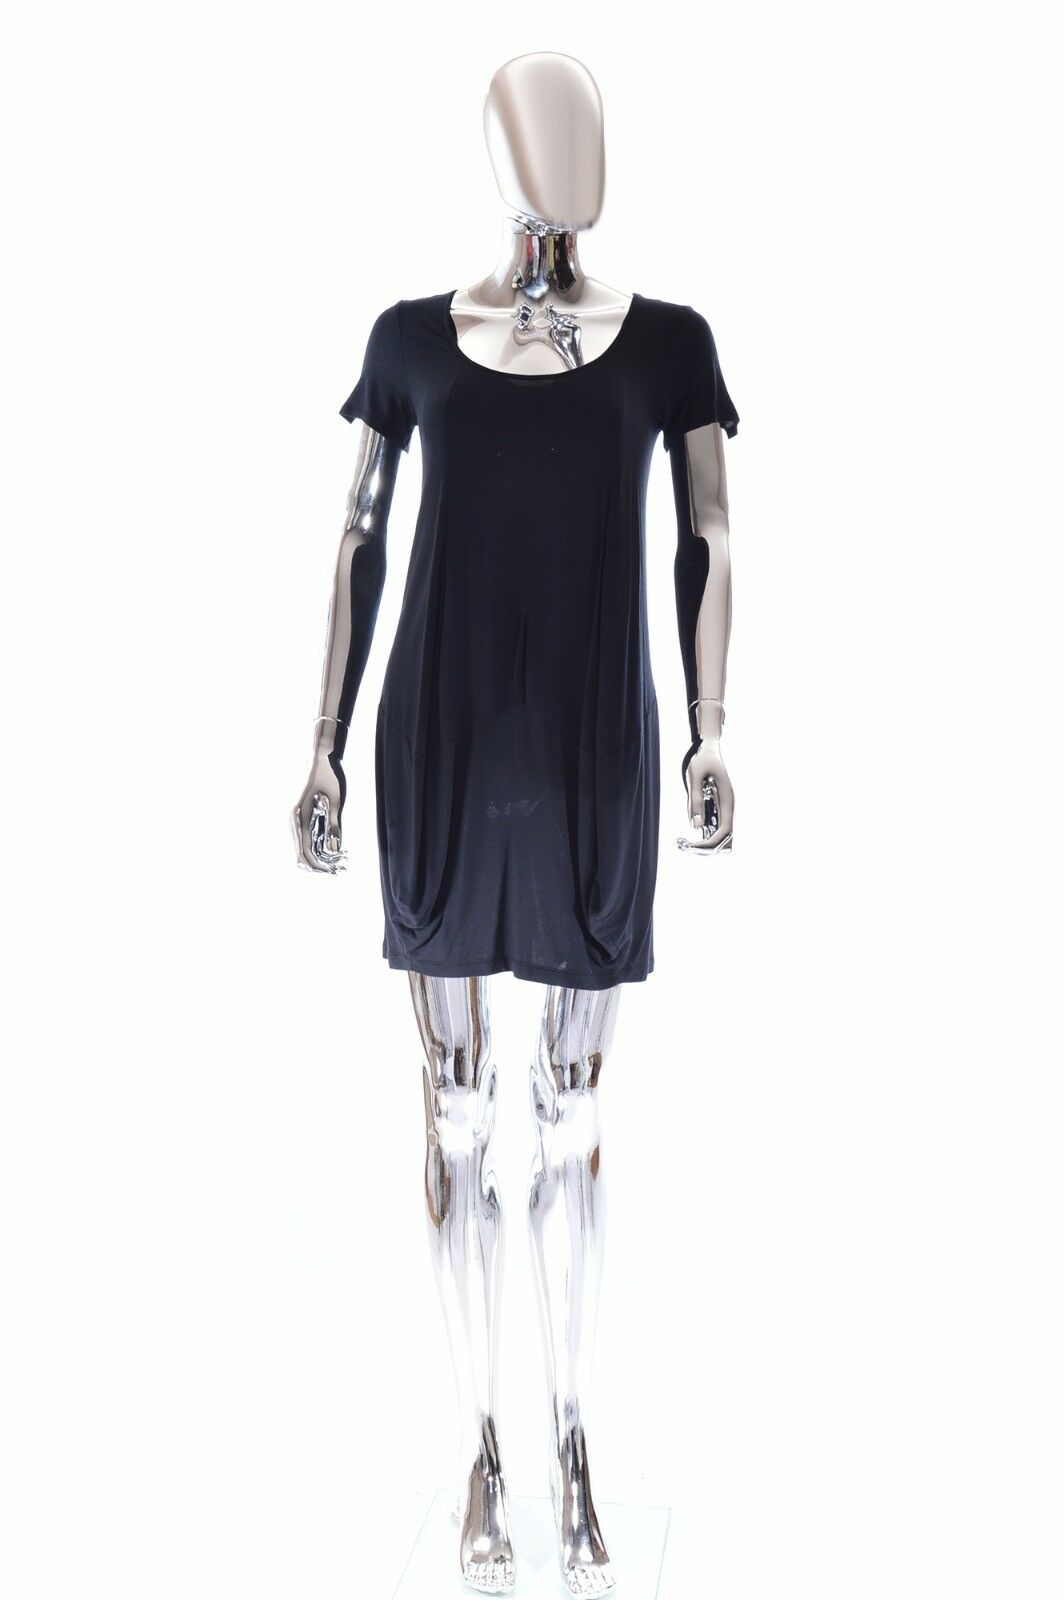 Vivienne Tam Dress with Short Sleeves Scoop Neck & Stretchy Knit - Pristine - XS